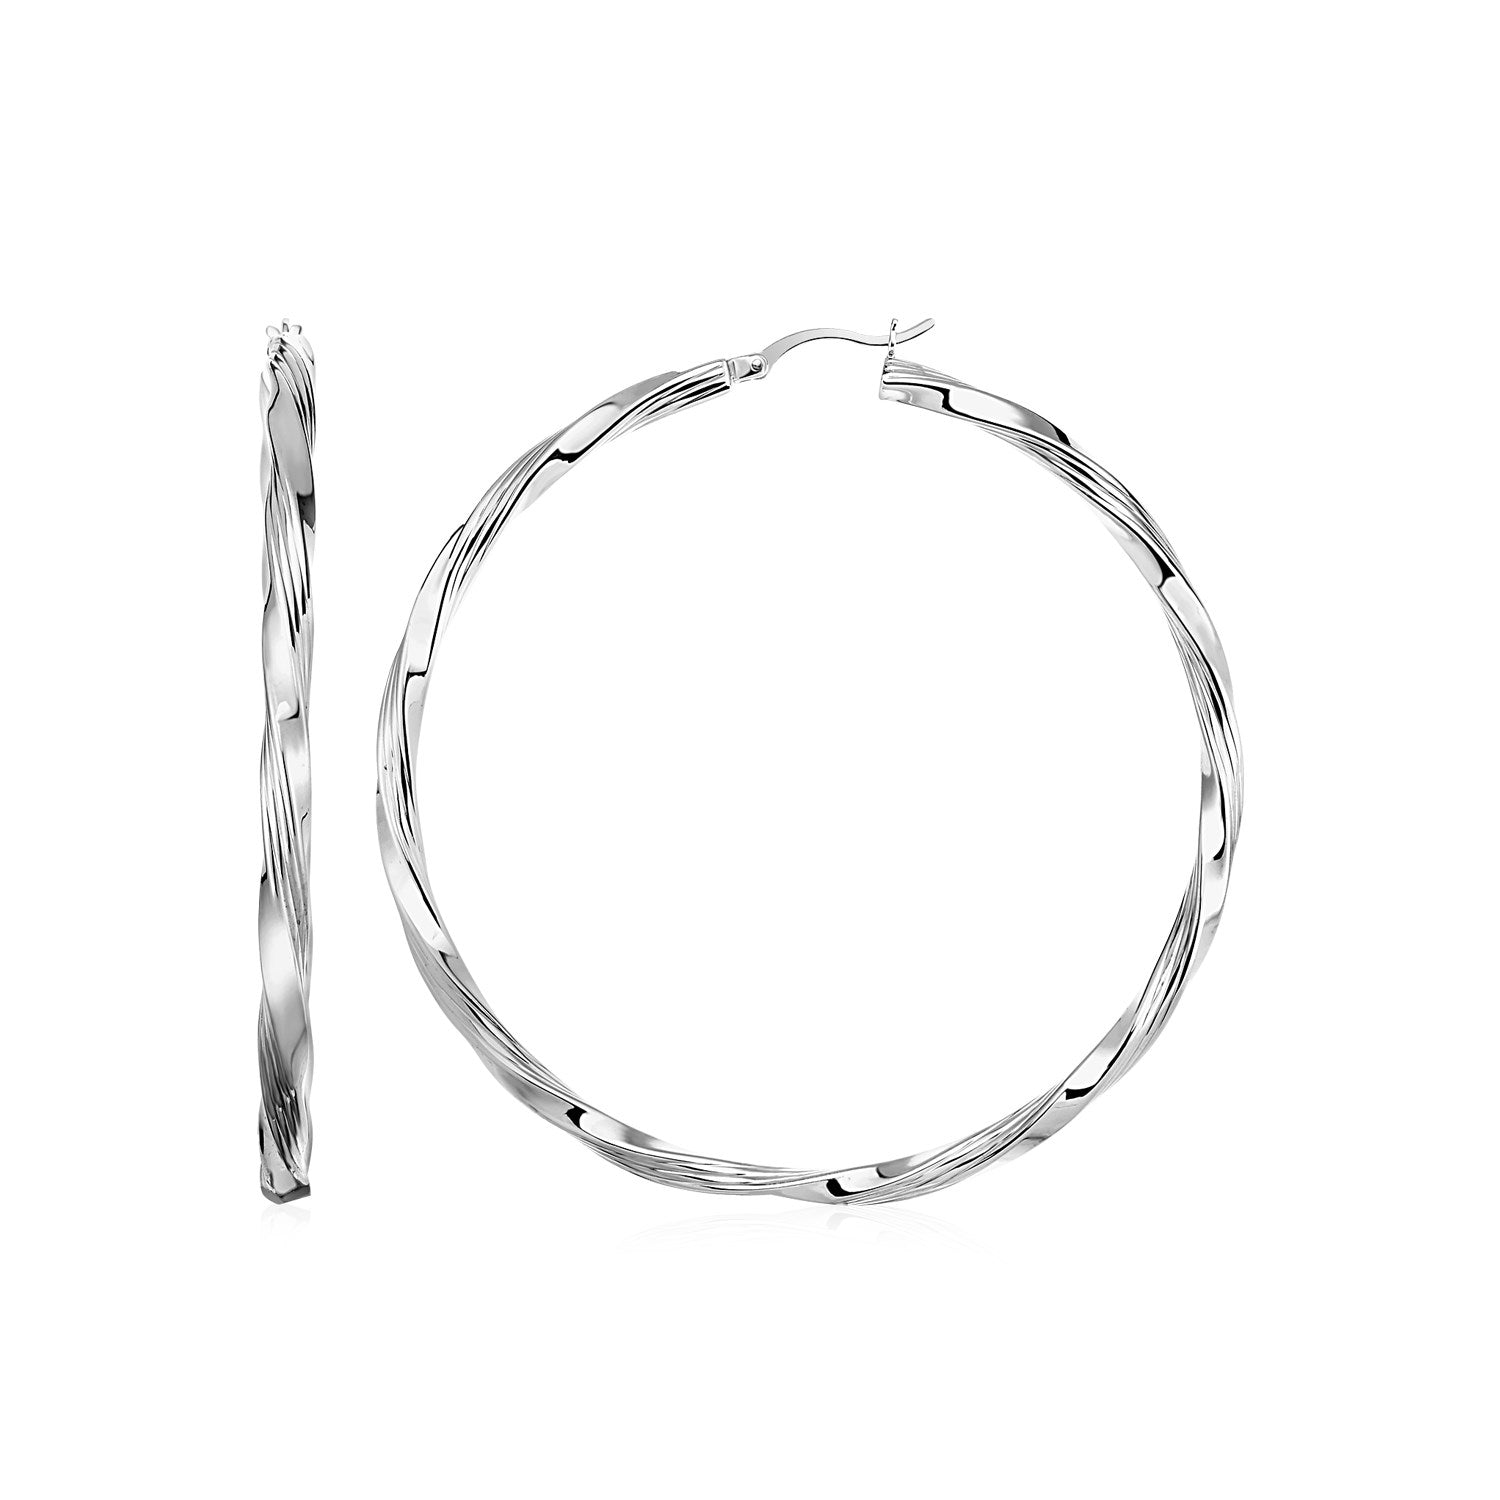 Square Profile Twisted Hoop Earrings in Sterling Silver